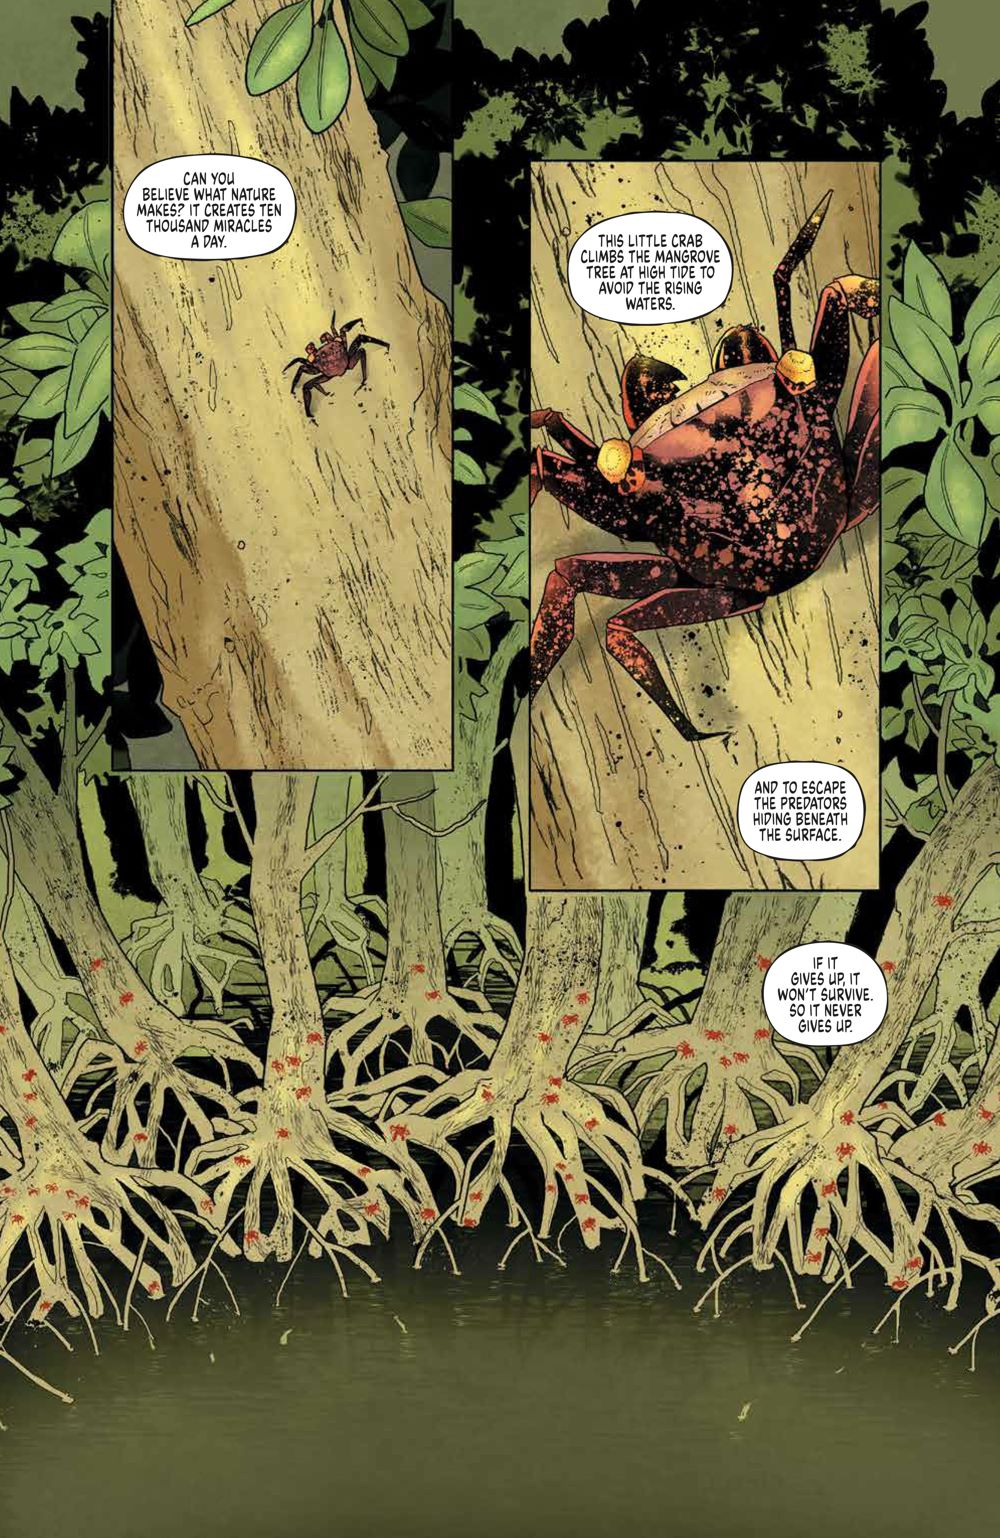 Eve_001_PRESS_3 ComicList Previews: EVE #1 (OF 5)